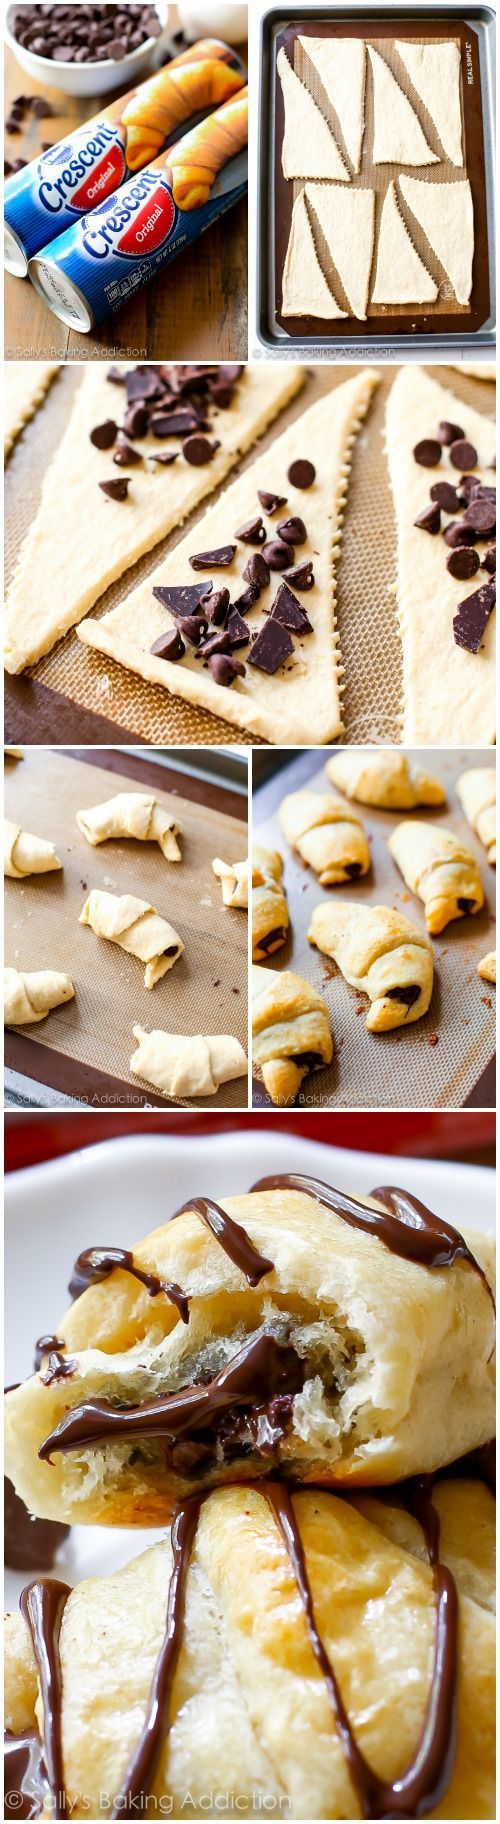 20 Minute Chocolate Crescents: These shortcut chocolate croissants could not be any easier. Filled with rich chocolate, topped with more chocolate, and only 20 minutes from start to finish.